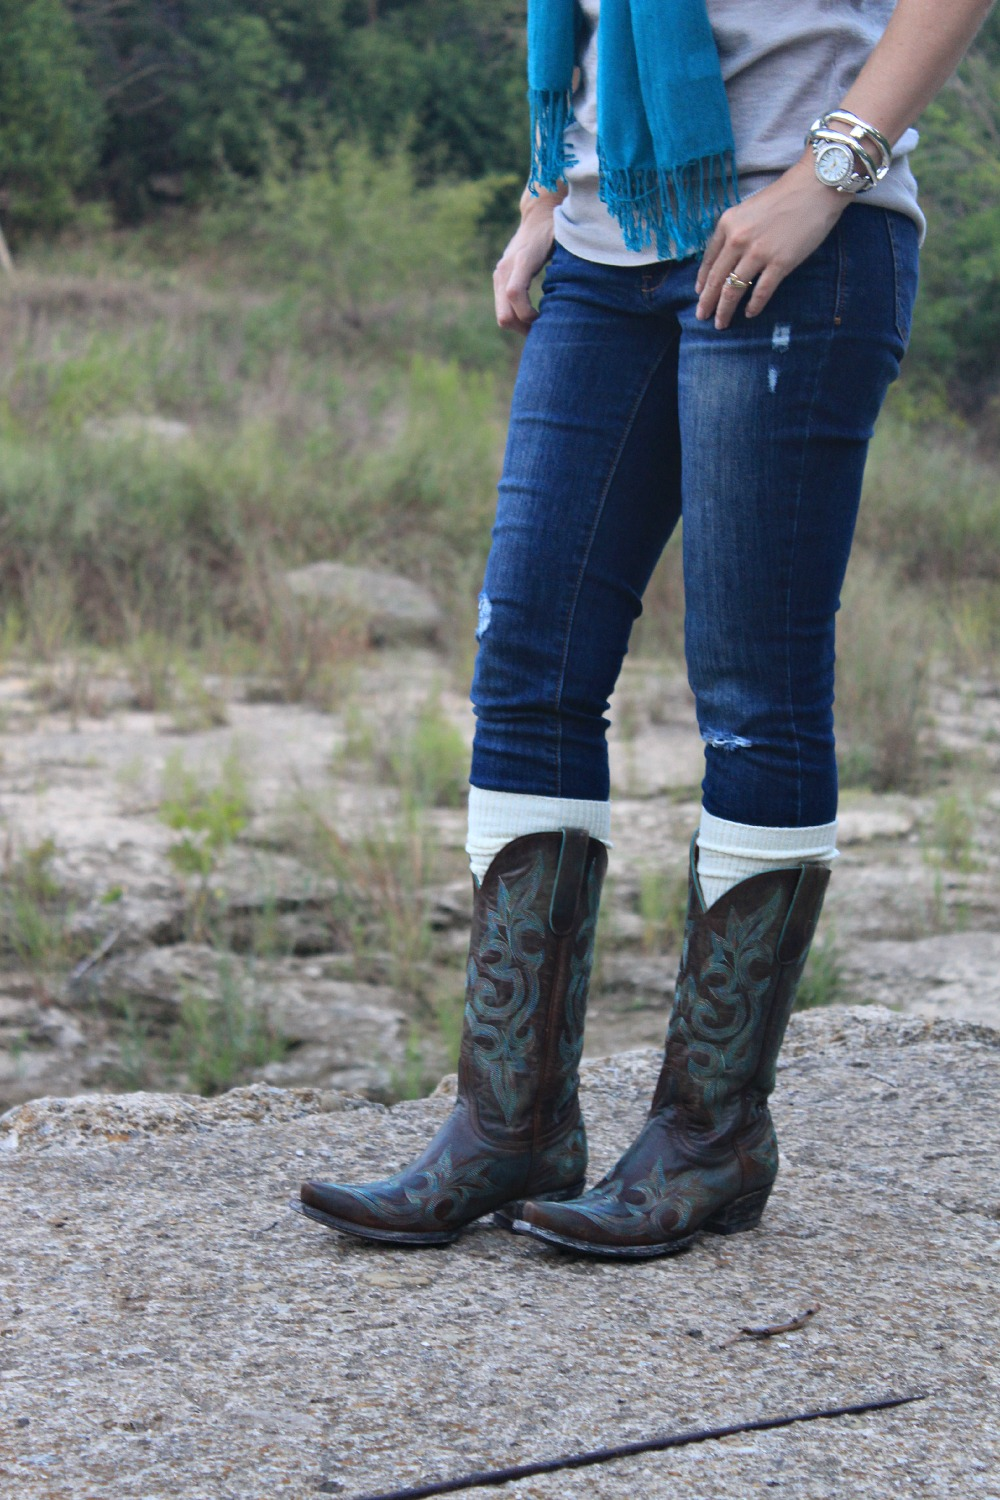 How to wear cowboy boots fashion 11